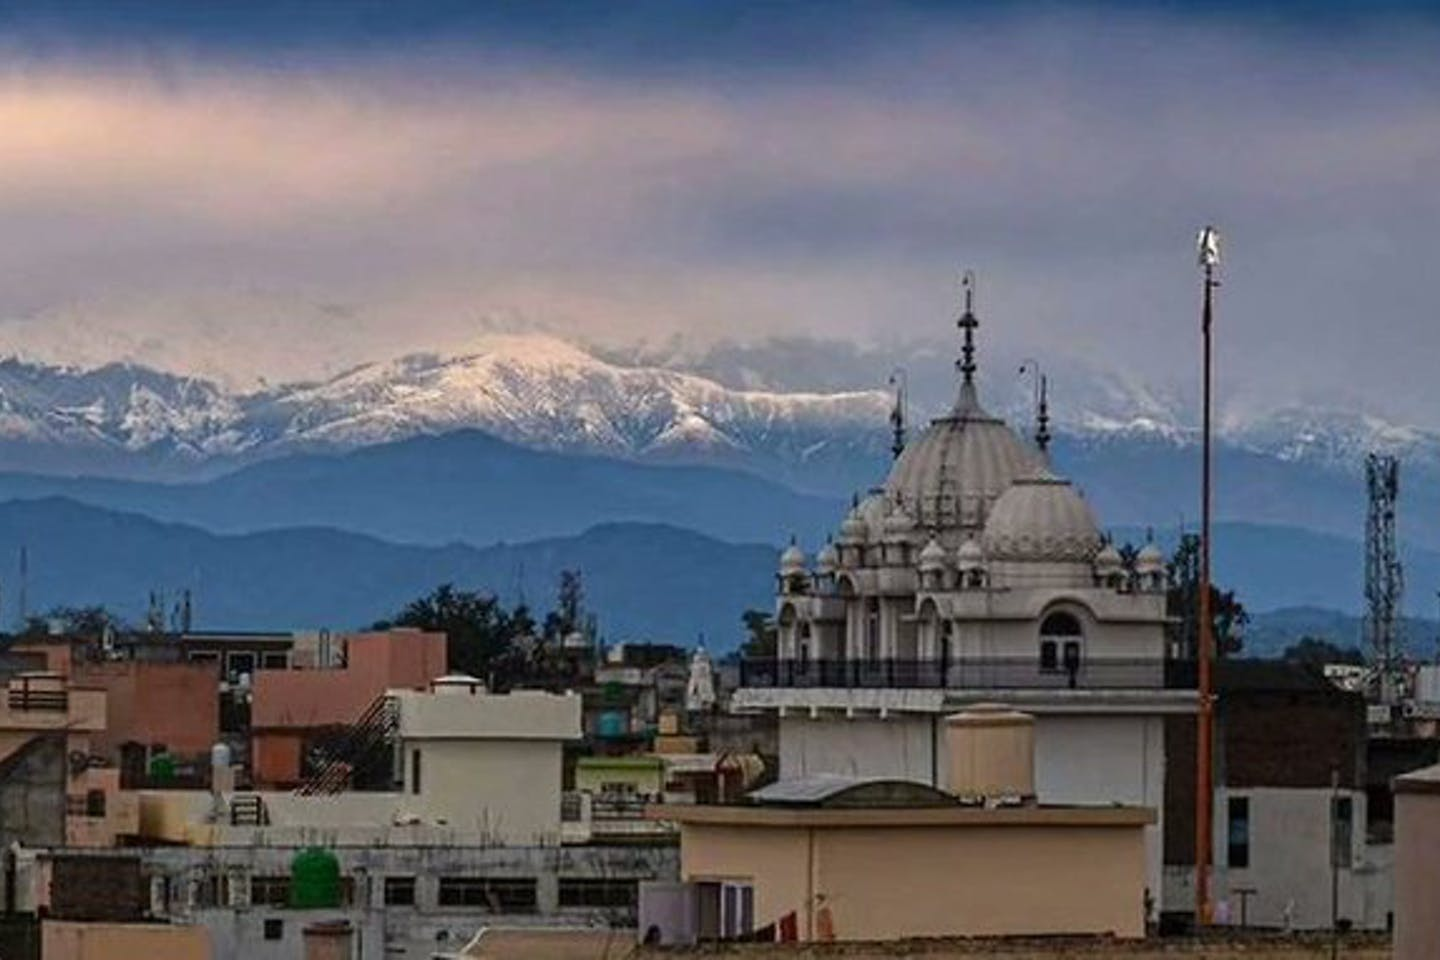 Now some residents in northern India say they can see the snow-capped Himalayas 200 kilometres away for the first time in 30 years.